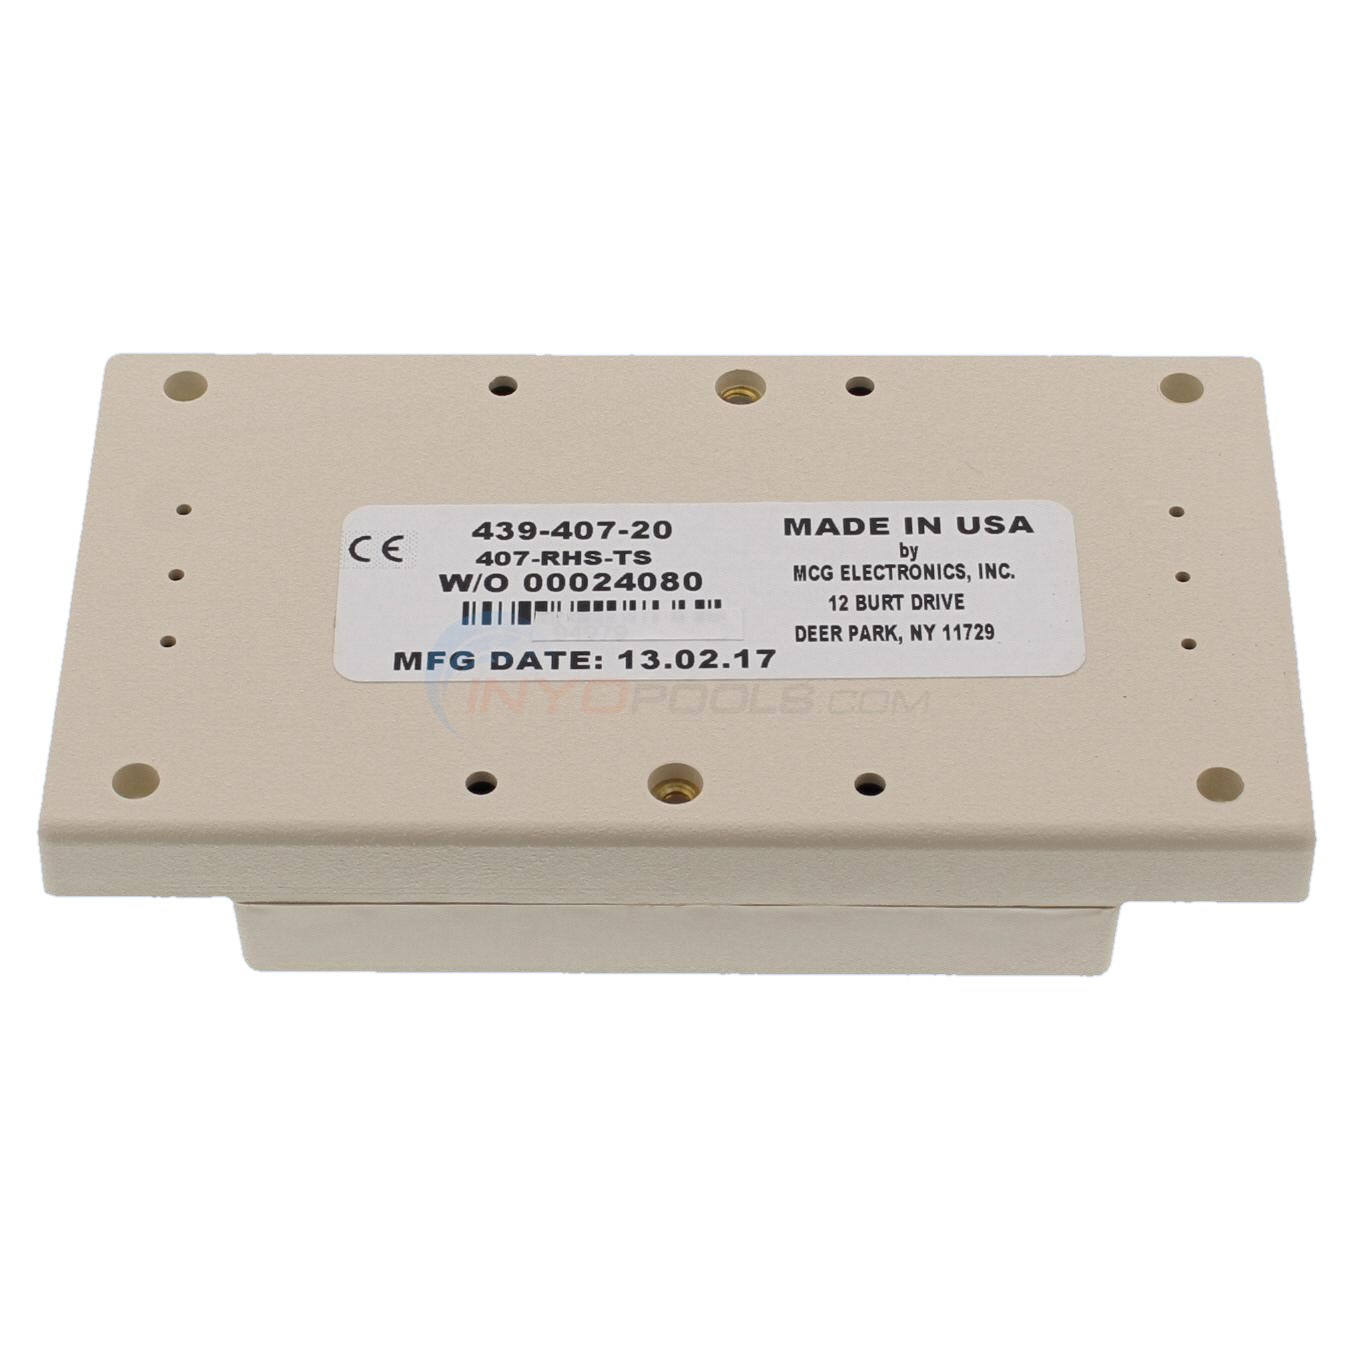 Pentair Surge Suppressor for 115v transformer wiring - AI101